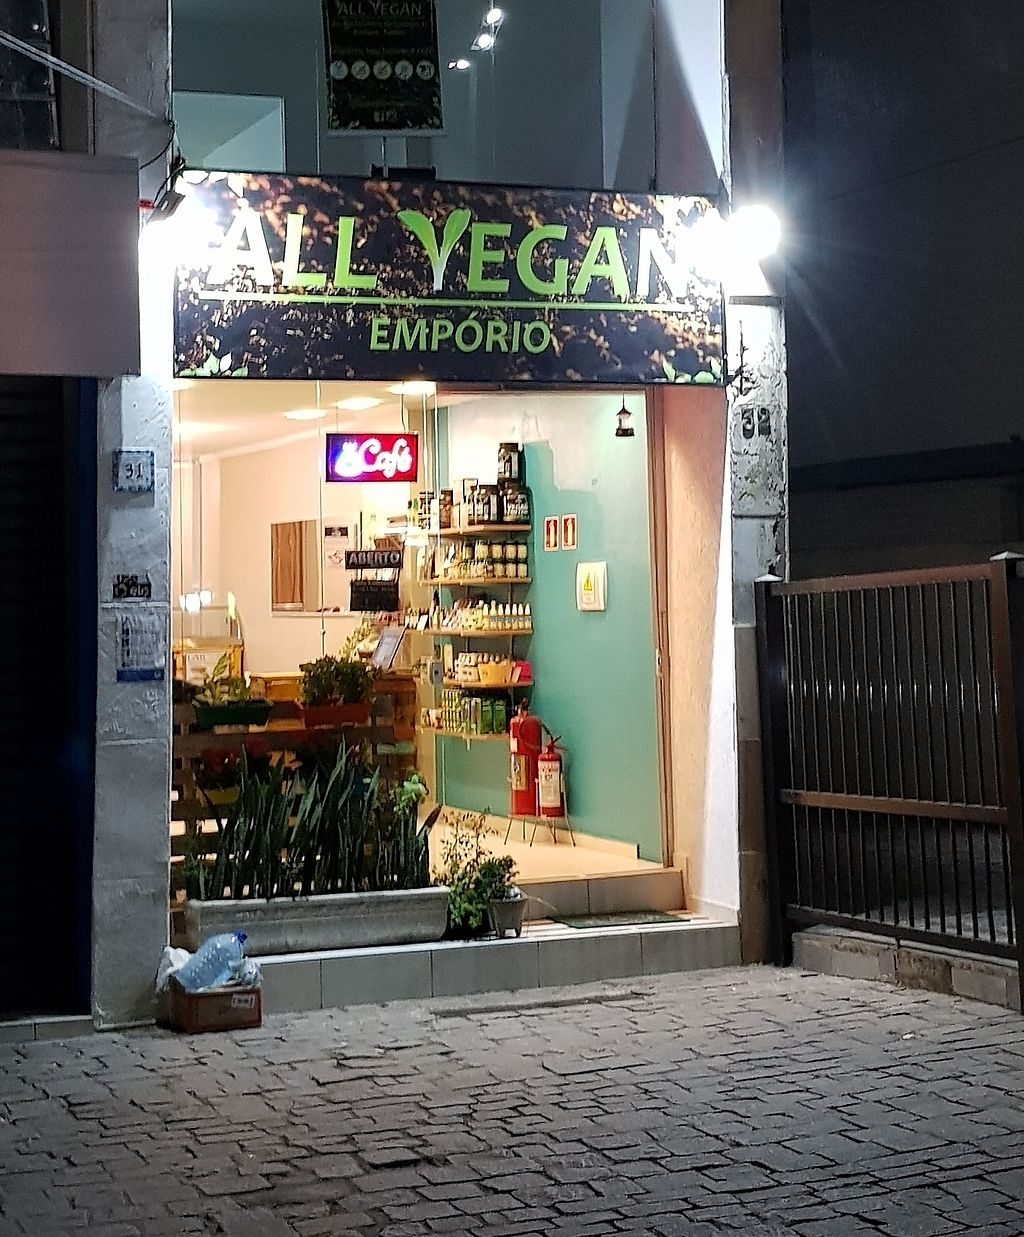 """Photo of ALL Vegan  by <a href=""""/members/profile/TatianaSaito"""">TatianaSaito</a> <br/>front door <br/> August 2, 2017  - <a href='/contact/abuse/image/89572/288087'>Report</a>"""